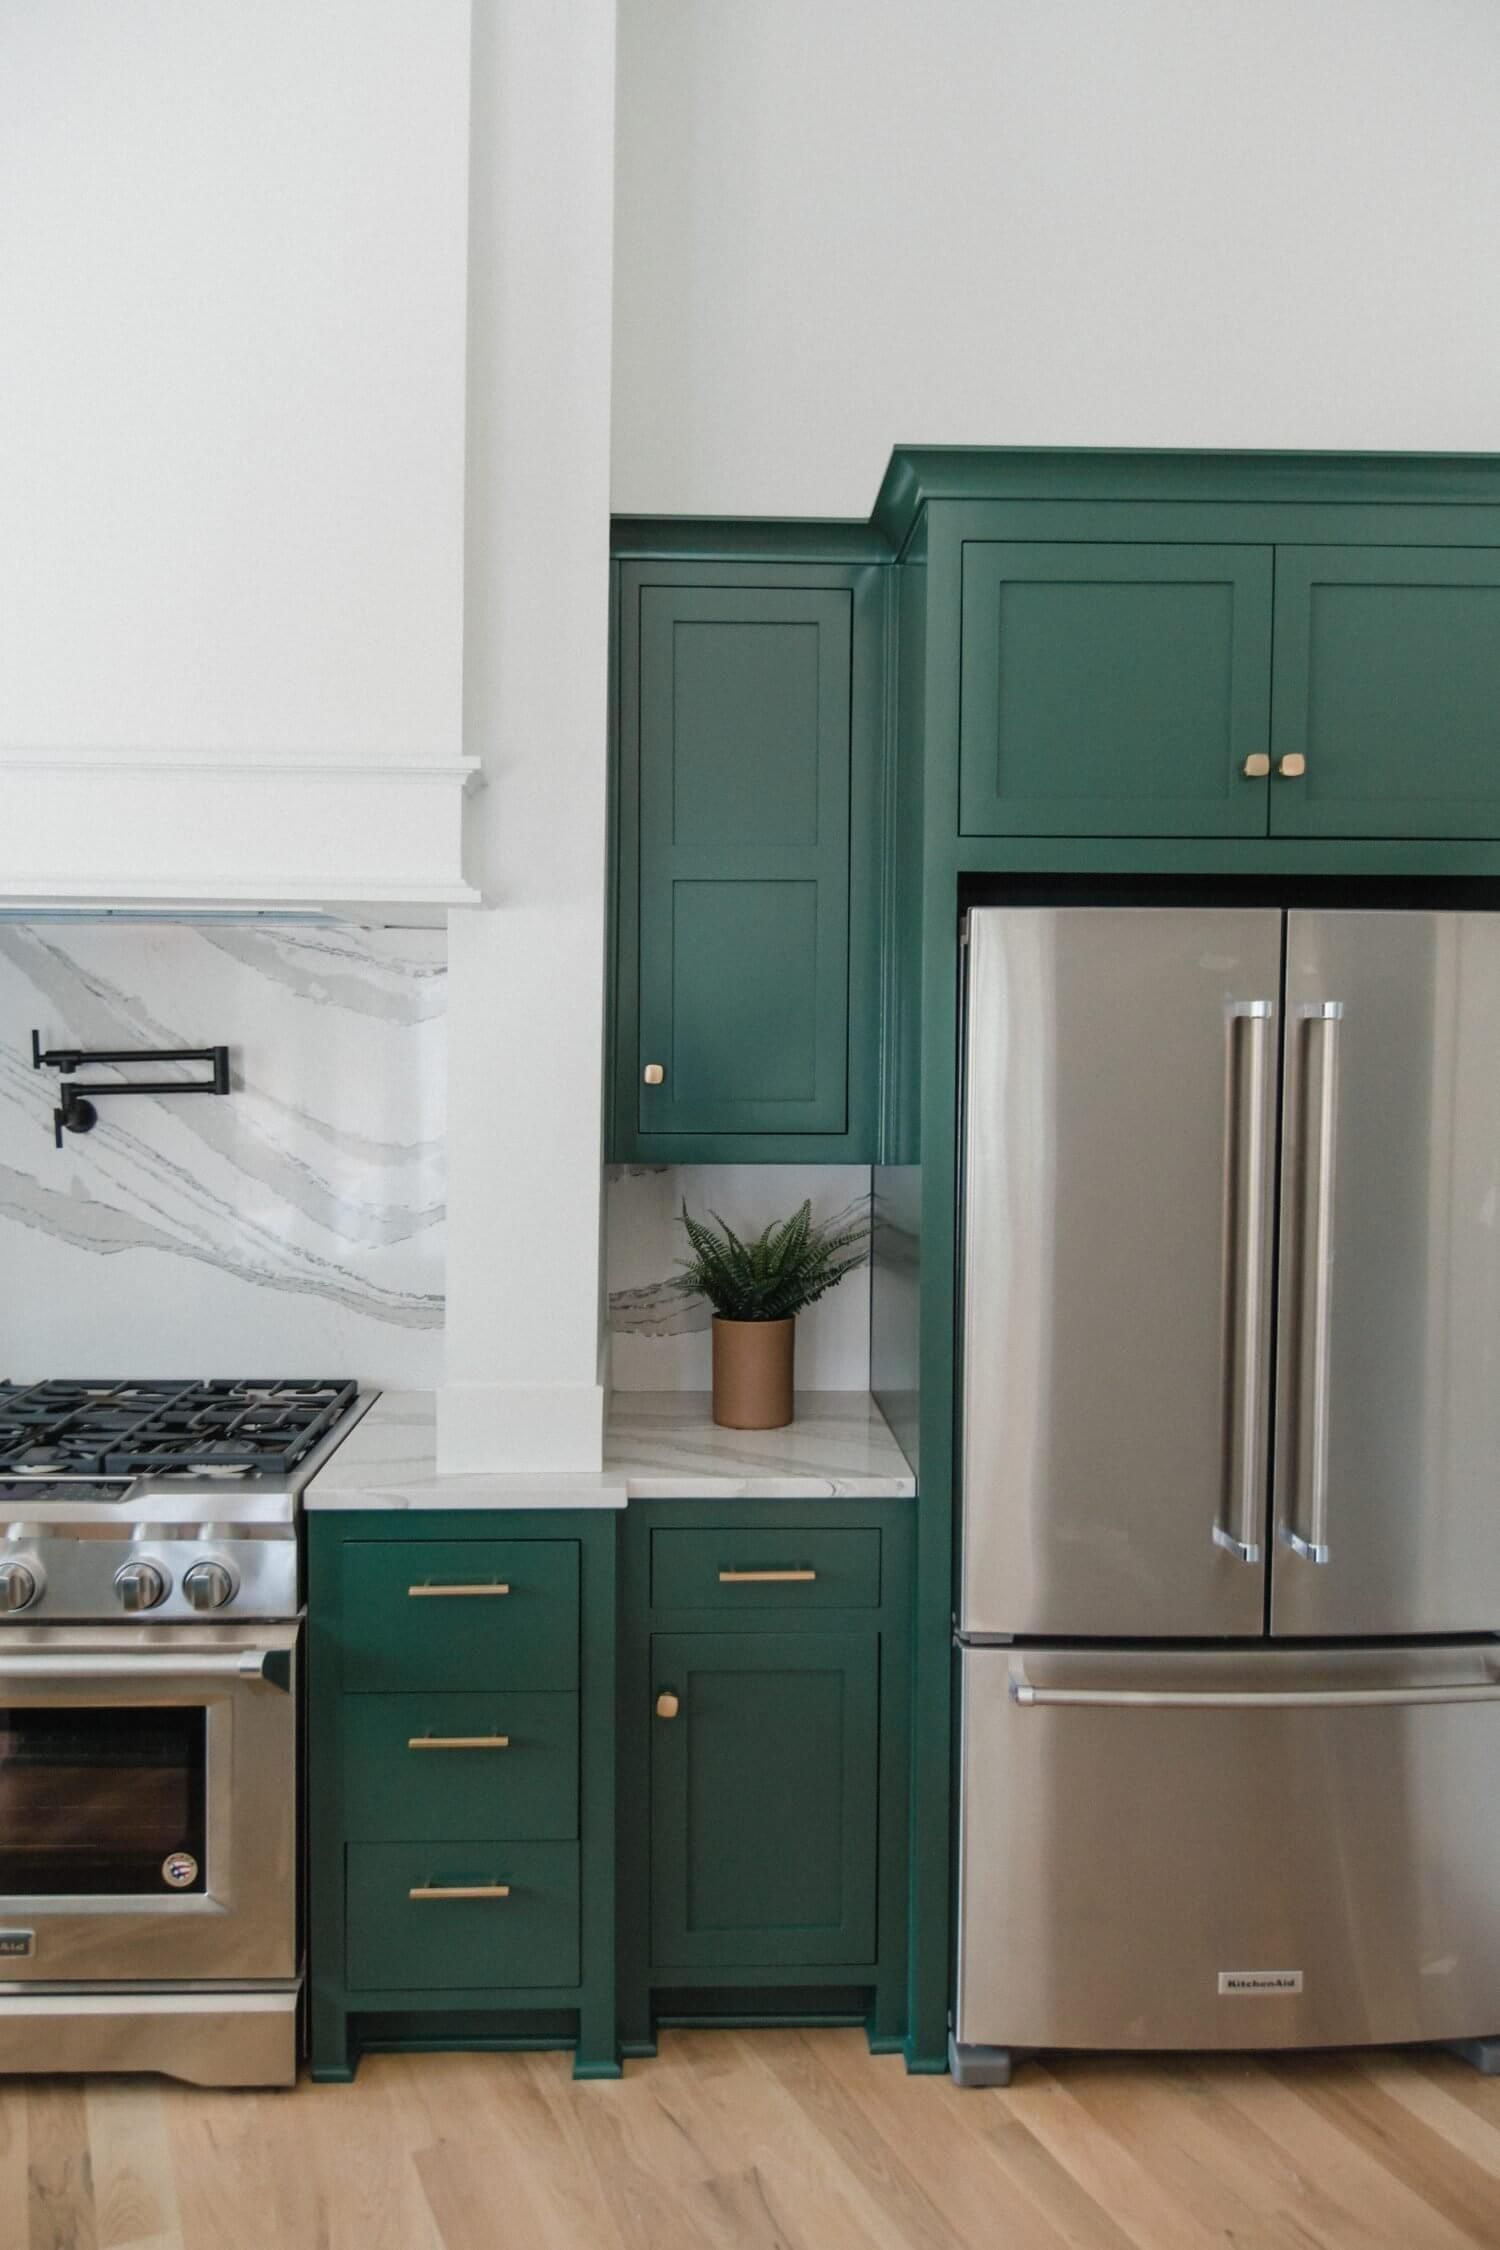 Portfolio Rooted Kc Kccabinets Metal Kitchen Cabinets Kitchen Inspiration Design Home Kitchens